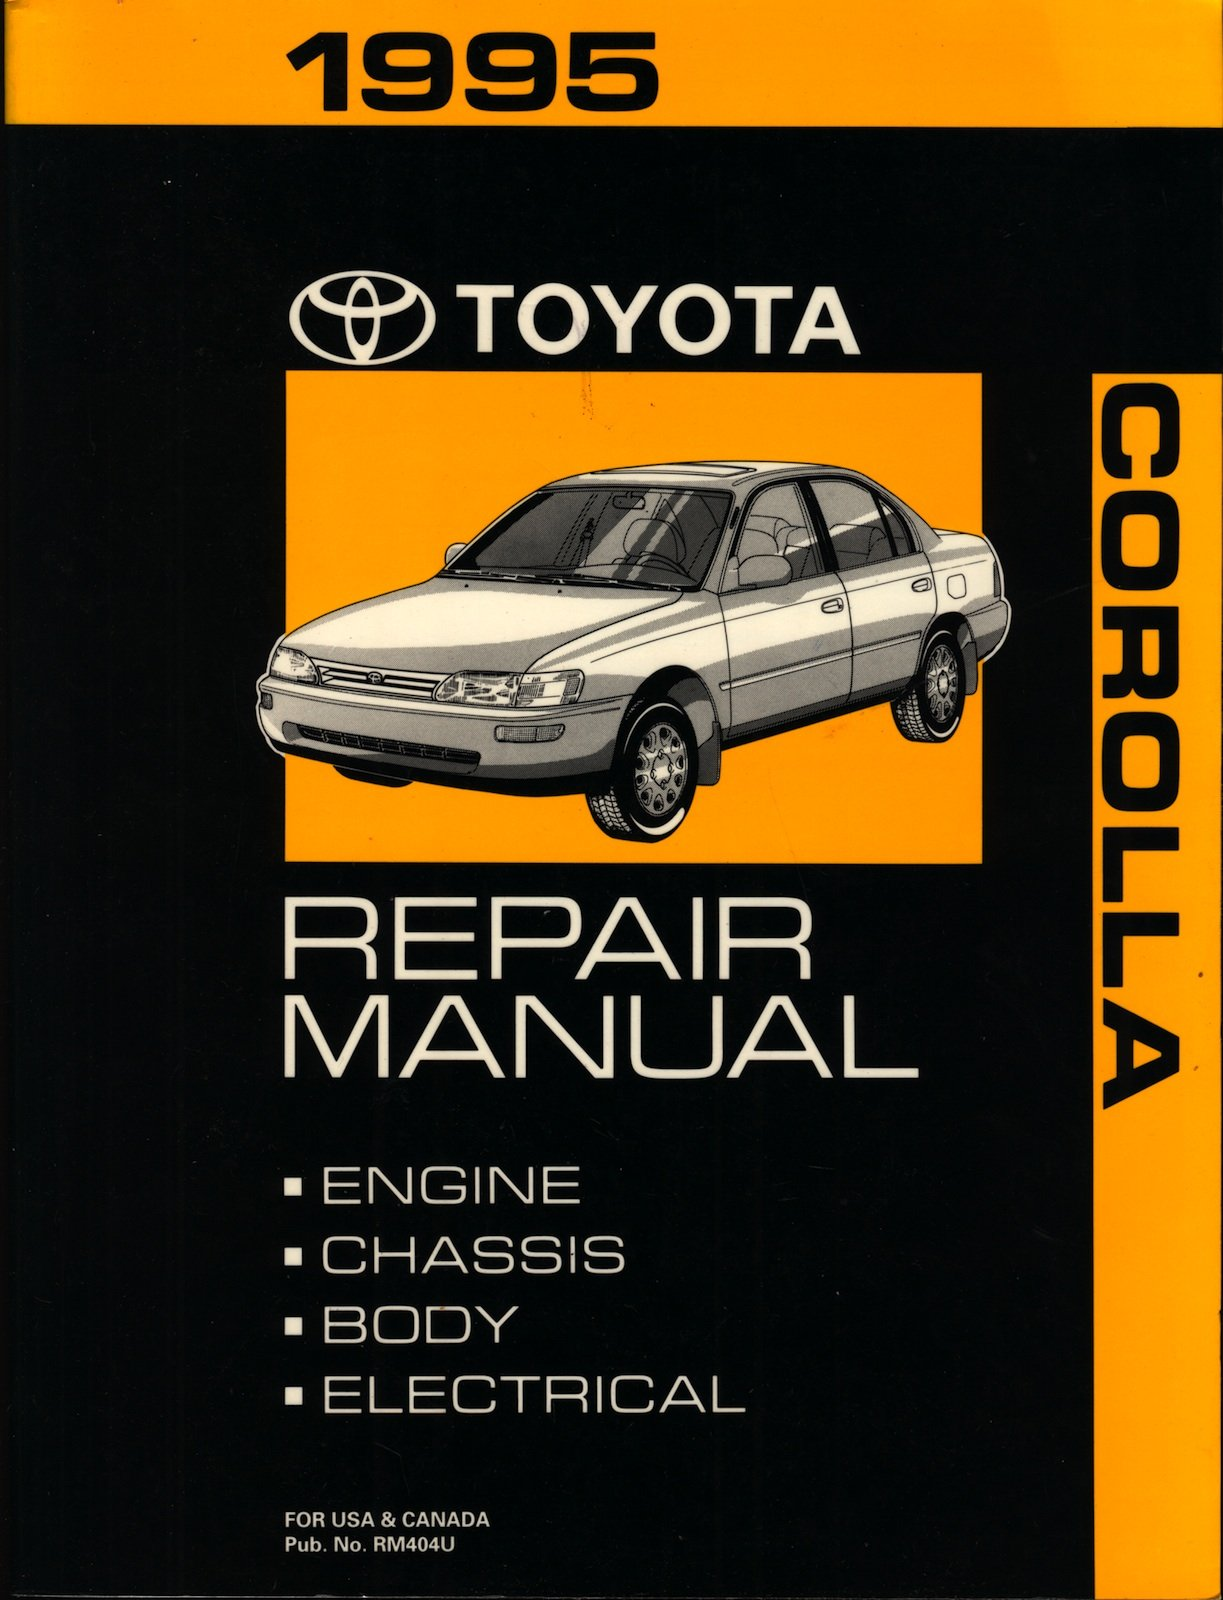 1996 Toyota Camry Wiring Diagrams 94 Engine Diagram Library 1995 Corolla Repair Manual Amazon Com Books 2006 1994